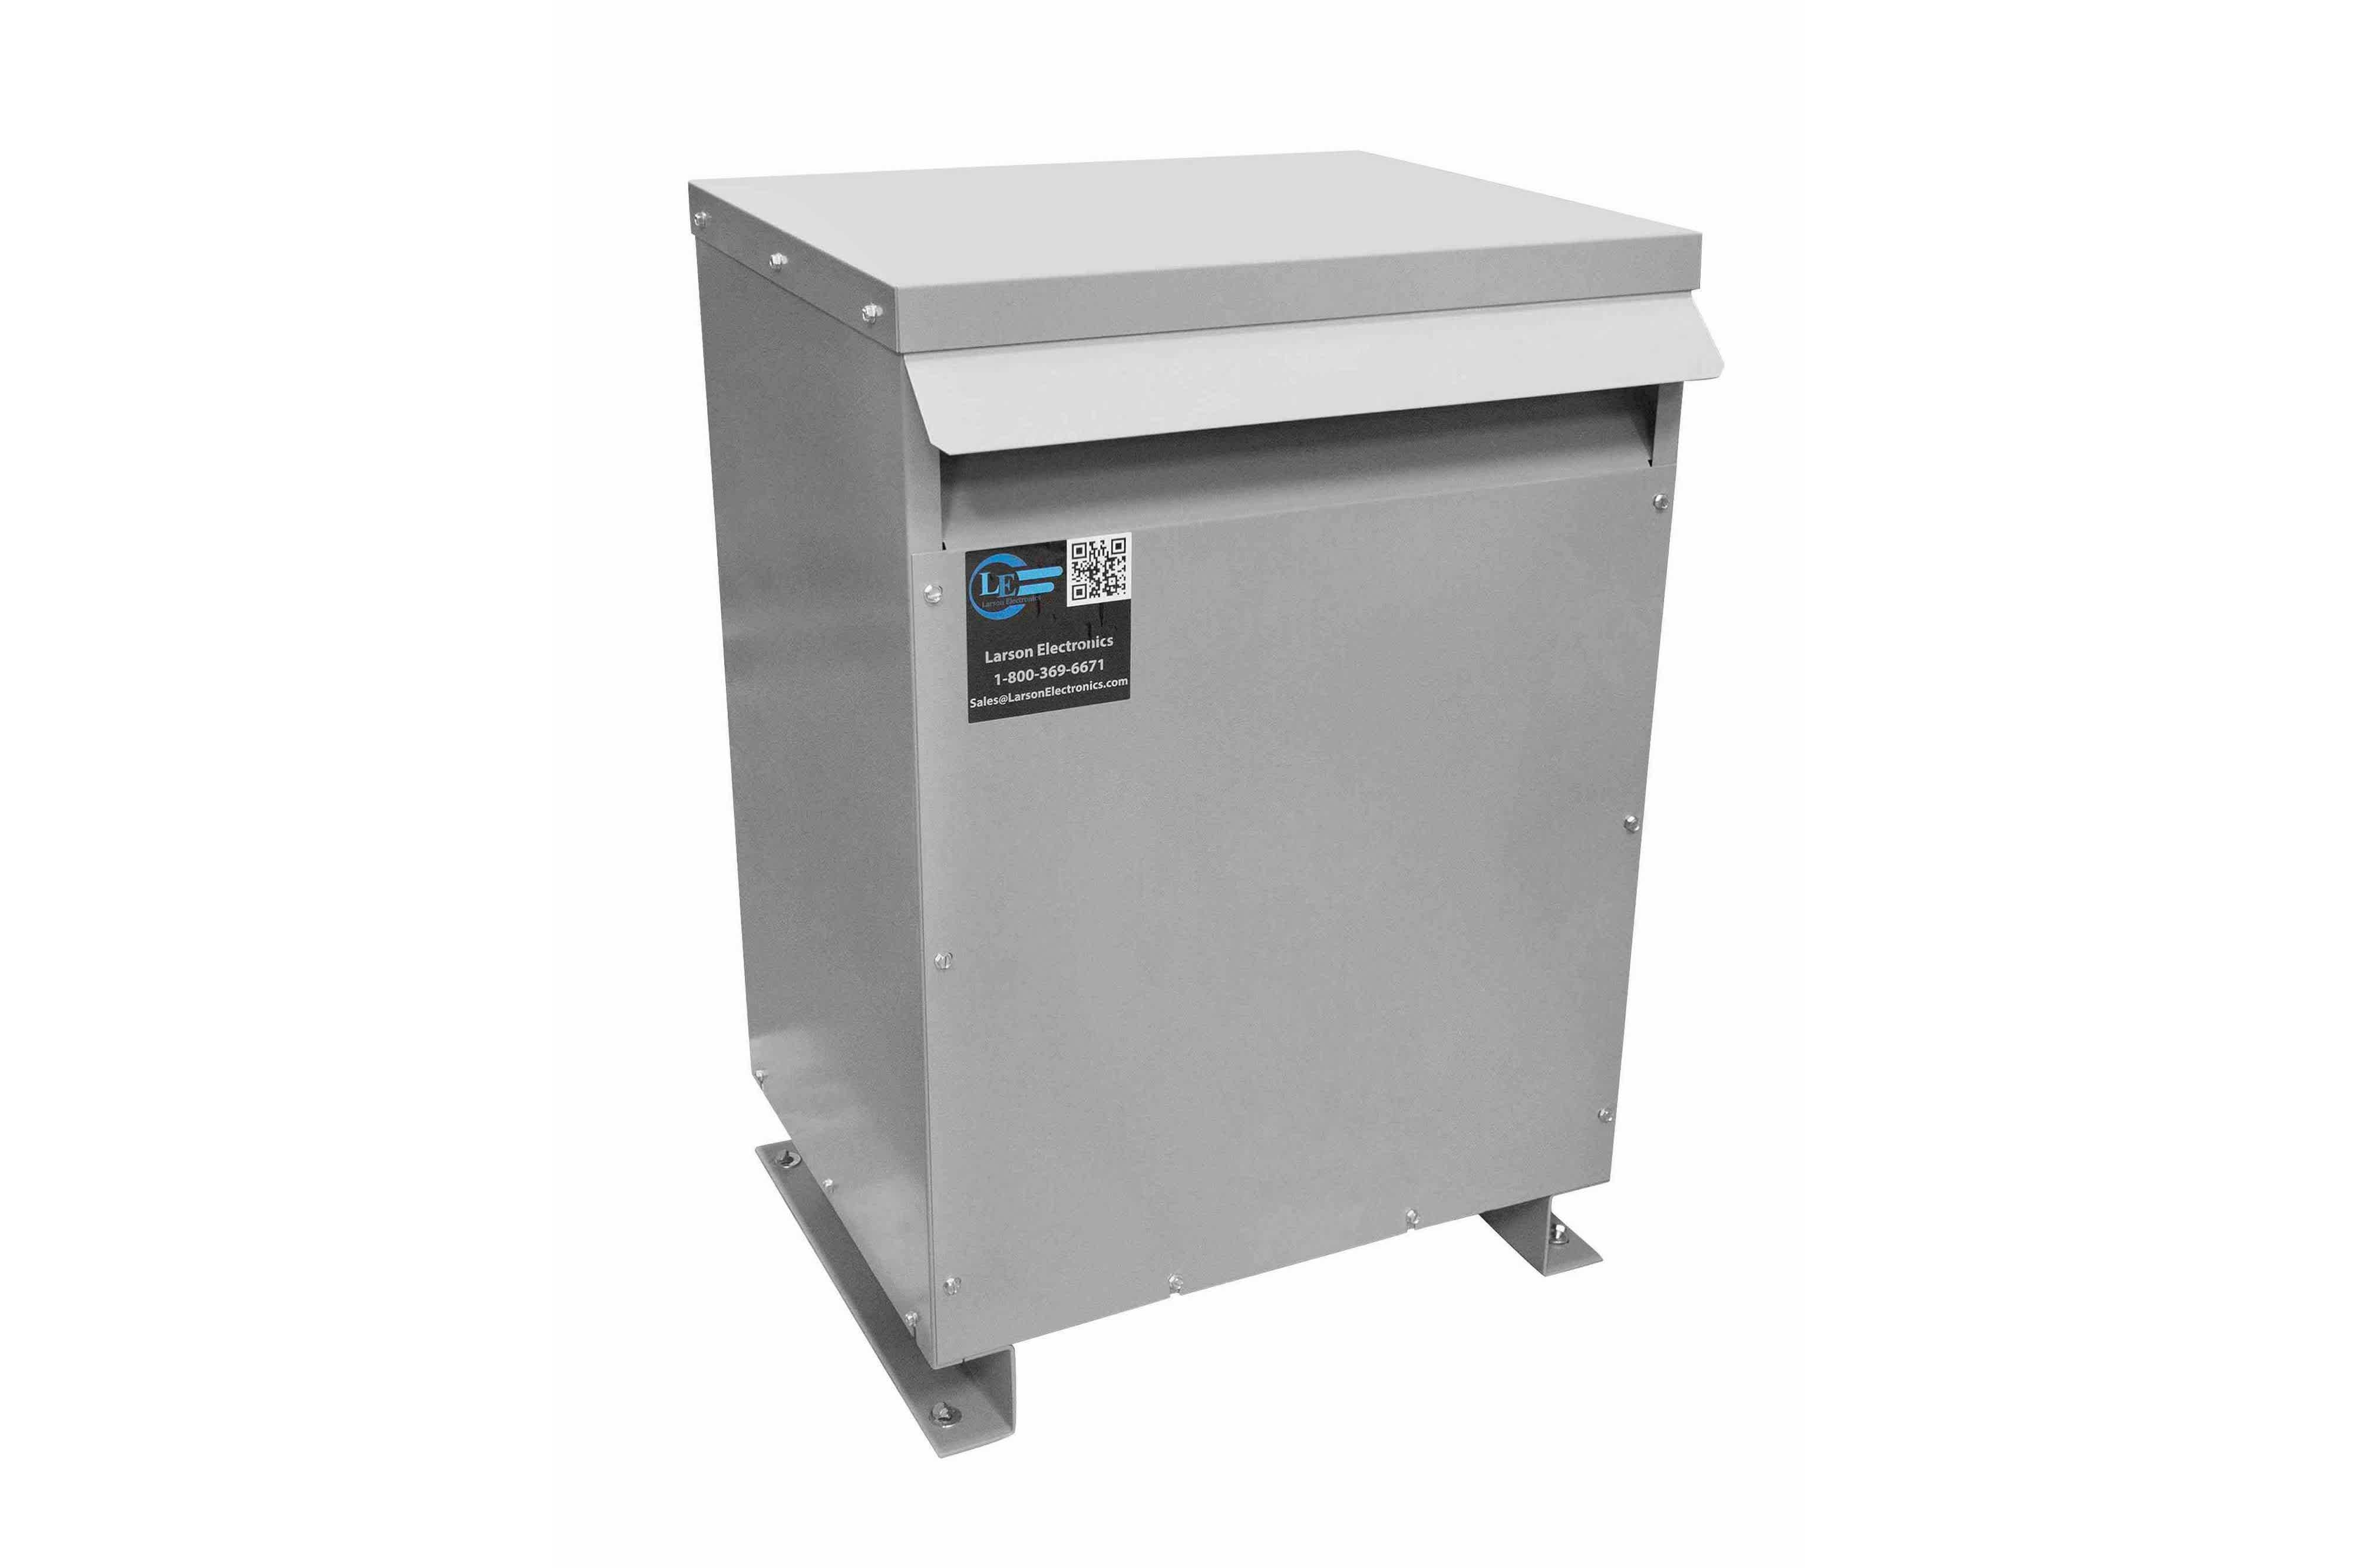 75 kVA 3PH DOE Transformer, 460V Delta Primary, 240V/120 Delta Secondary, N3R, Ventilated, 60 Hz